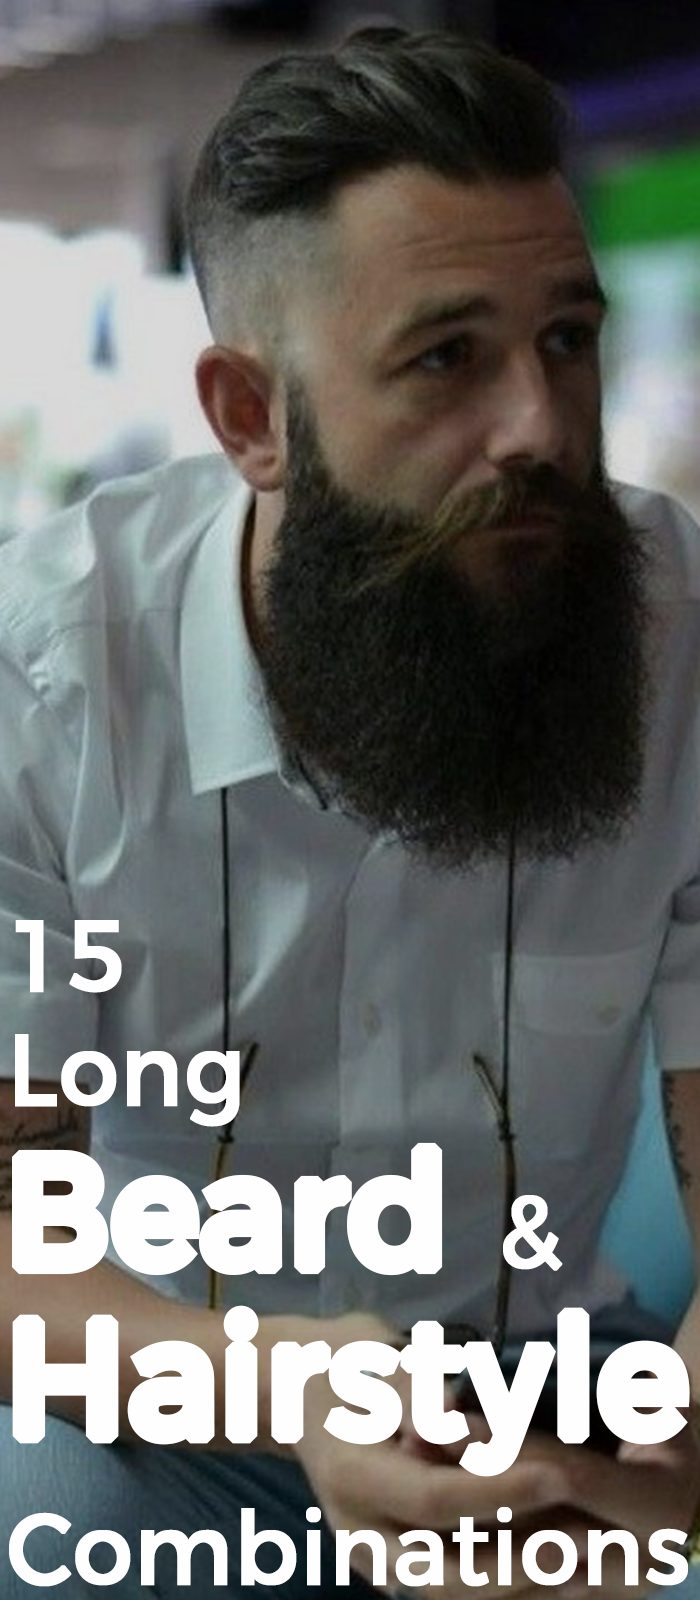 15 Long Beard And Hairstyle Combinations.